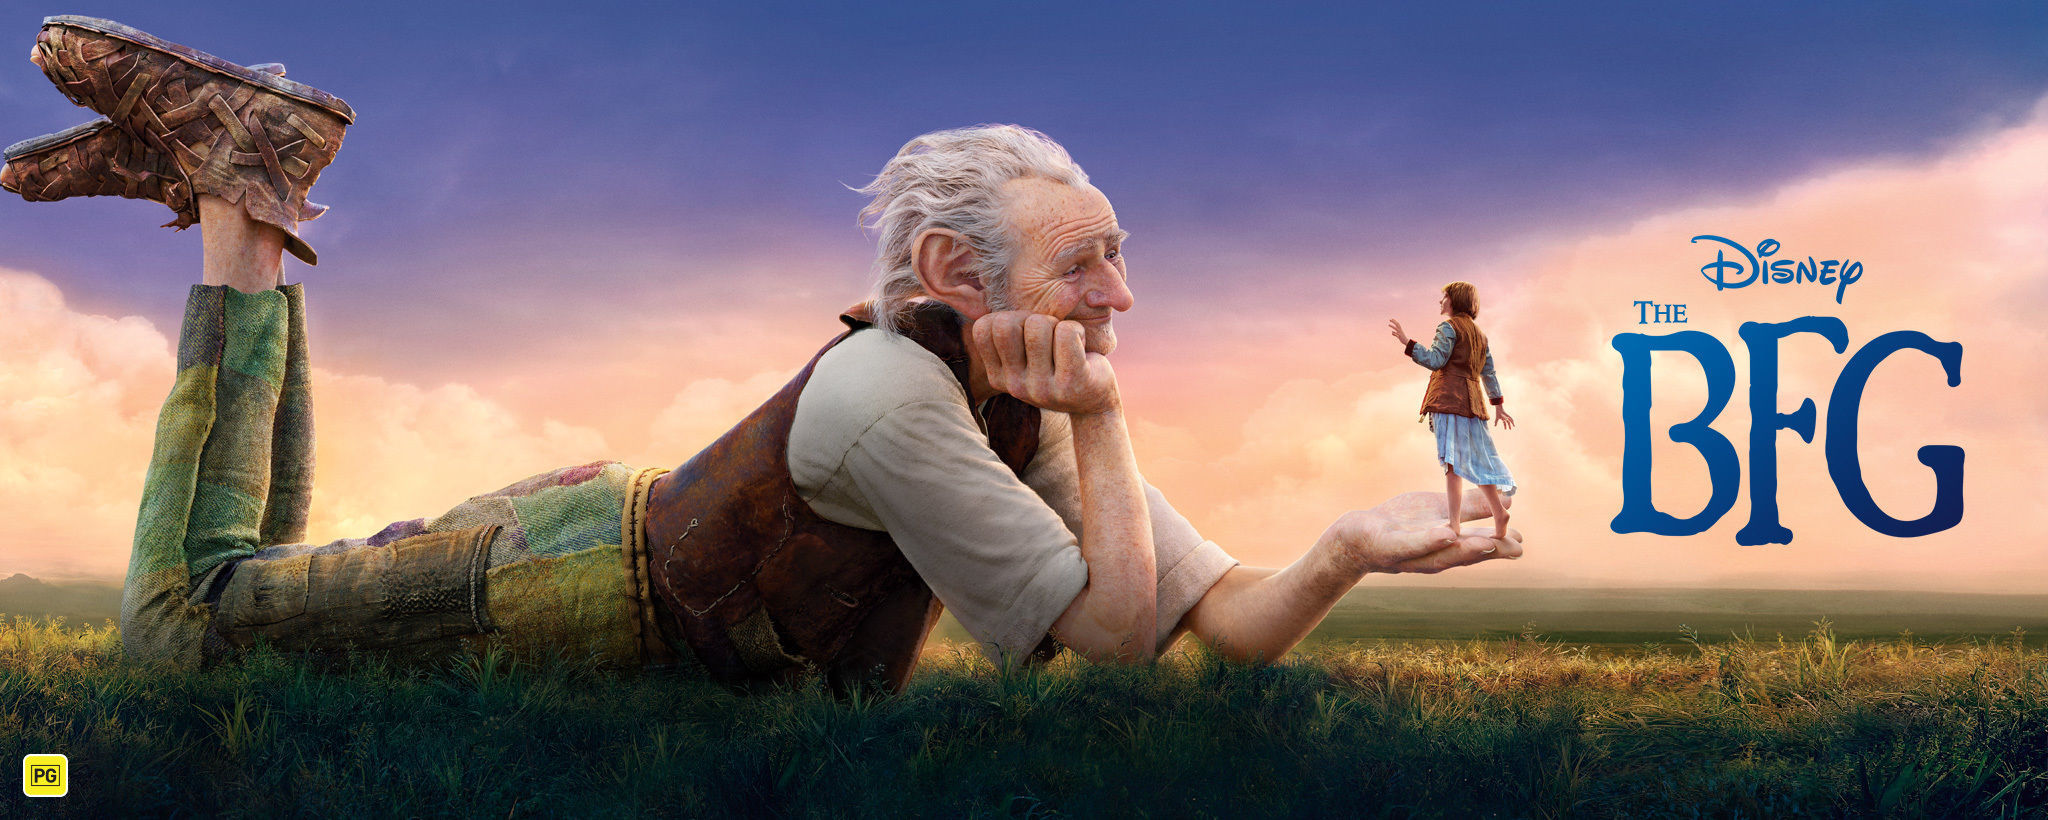 """BEAUTIFULLY DONE,  WHIZ POPPINGLY FUNNY  AND  GREATLY EMPOWERING!"" A FILM REVIEW ON ""The BFG"""